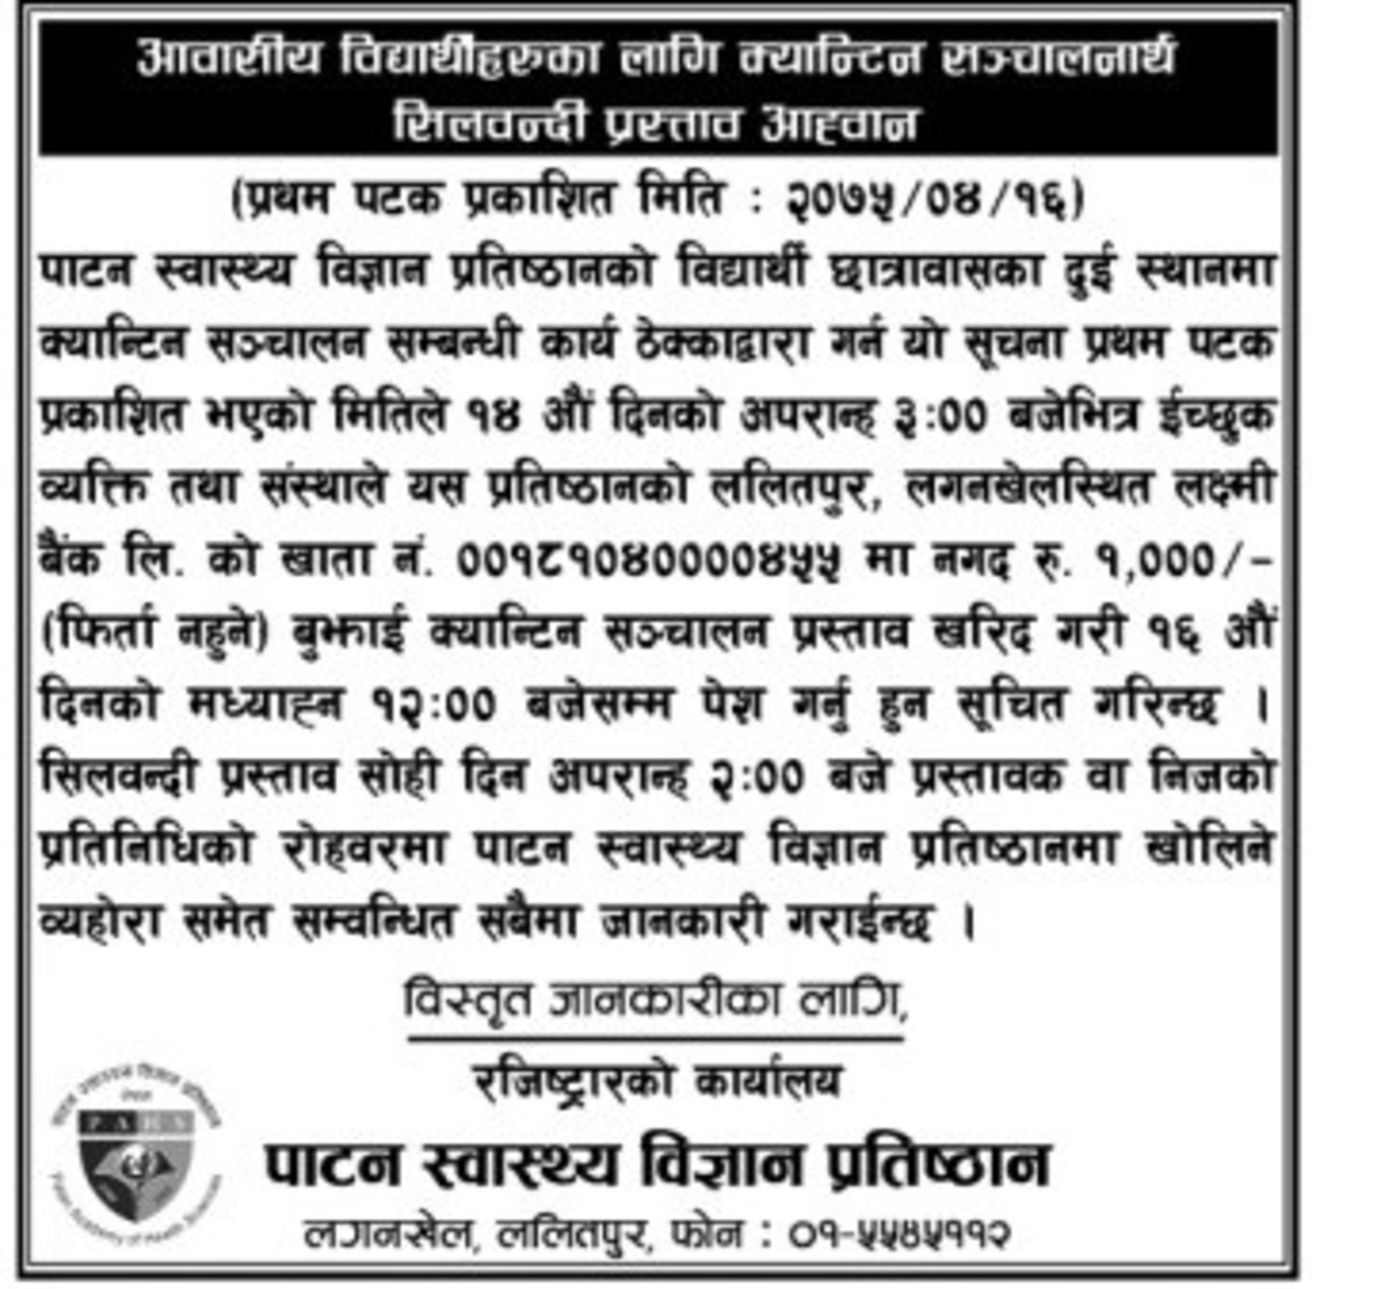 Bids and Tenders Nepal - Sealed Tender - Operation of Canteen